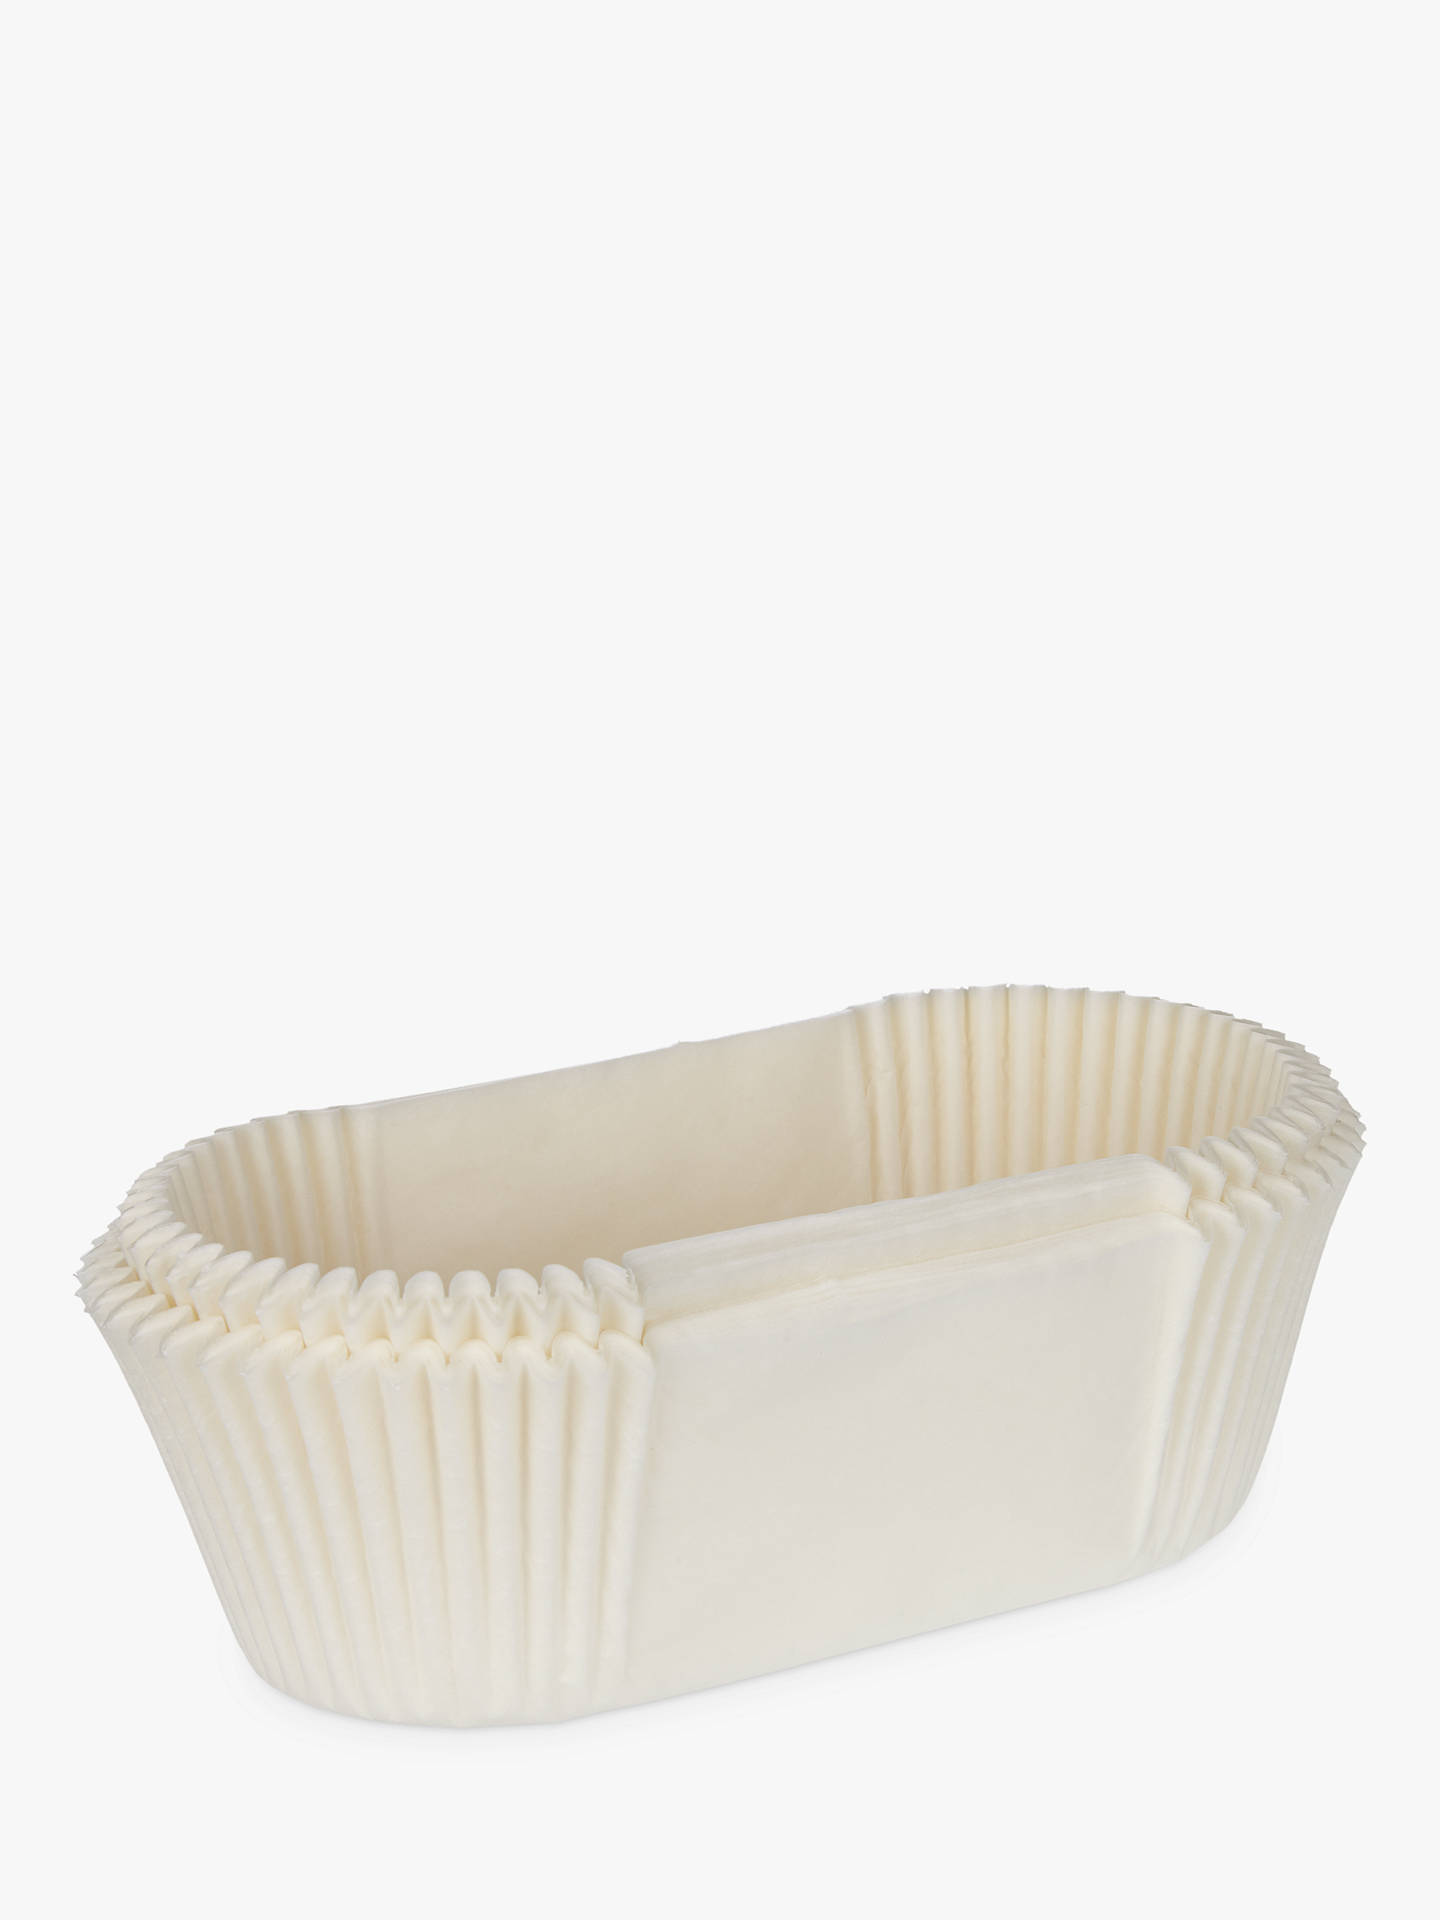 john lewis partners 1lb loaf tin liners at john lewis. Black Bedroom Furniture Sets. Home Design Ideas